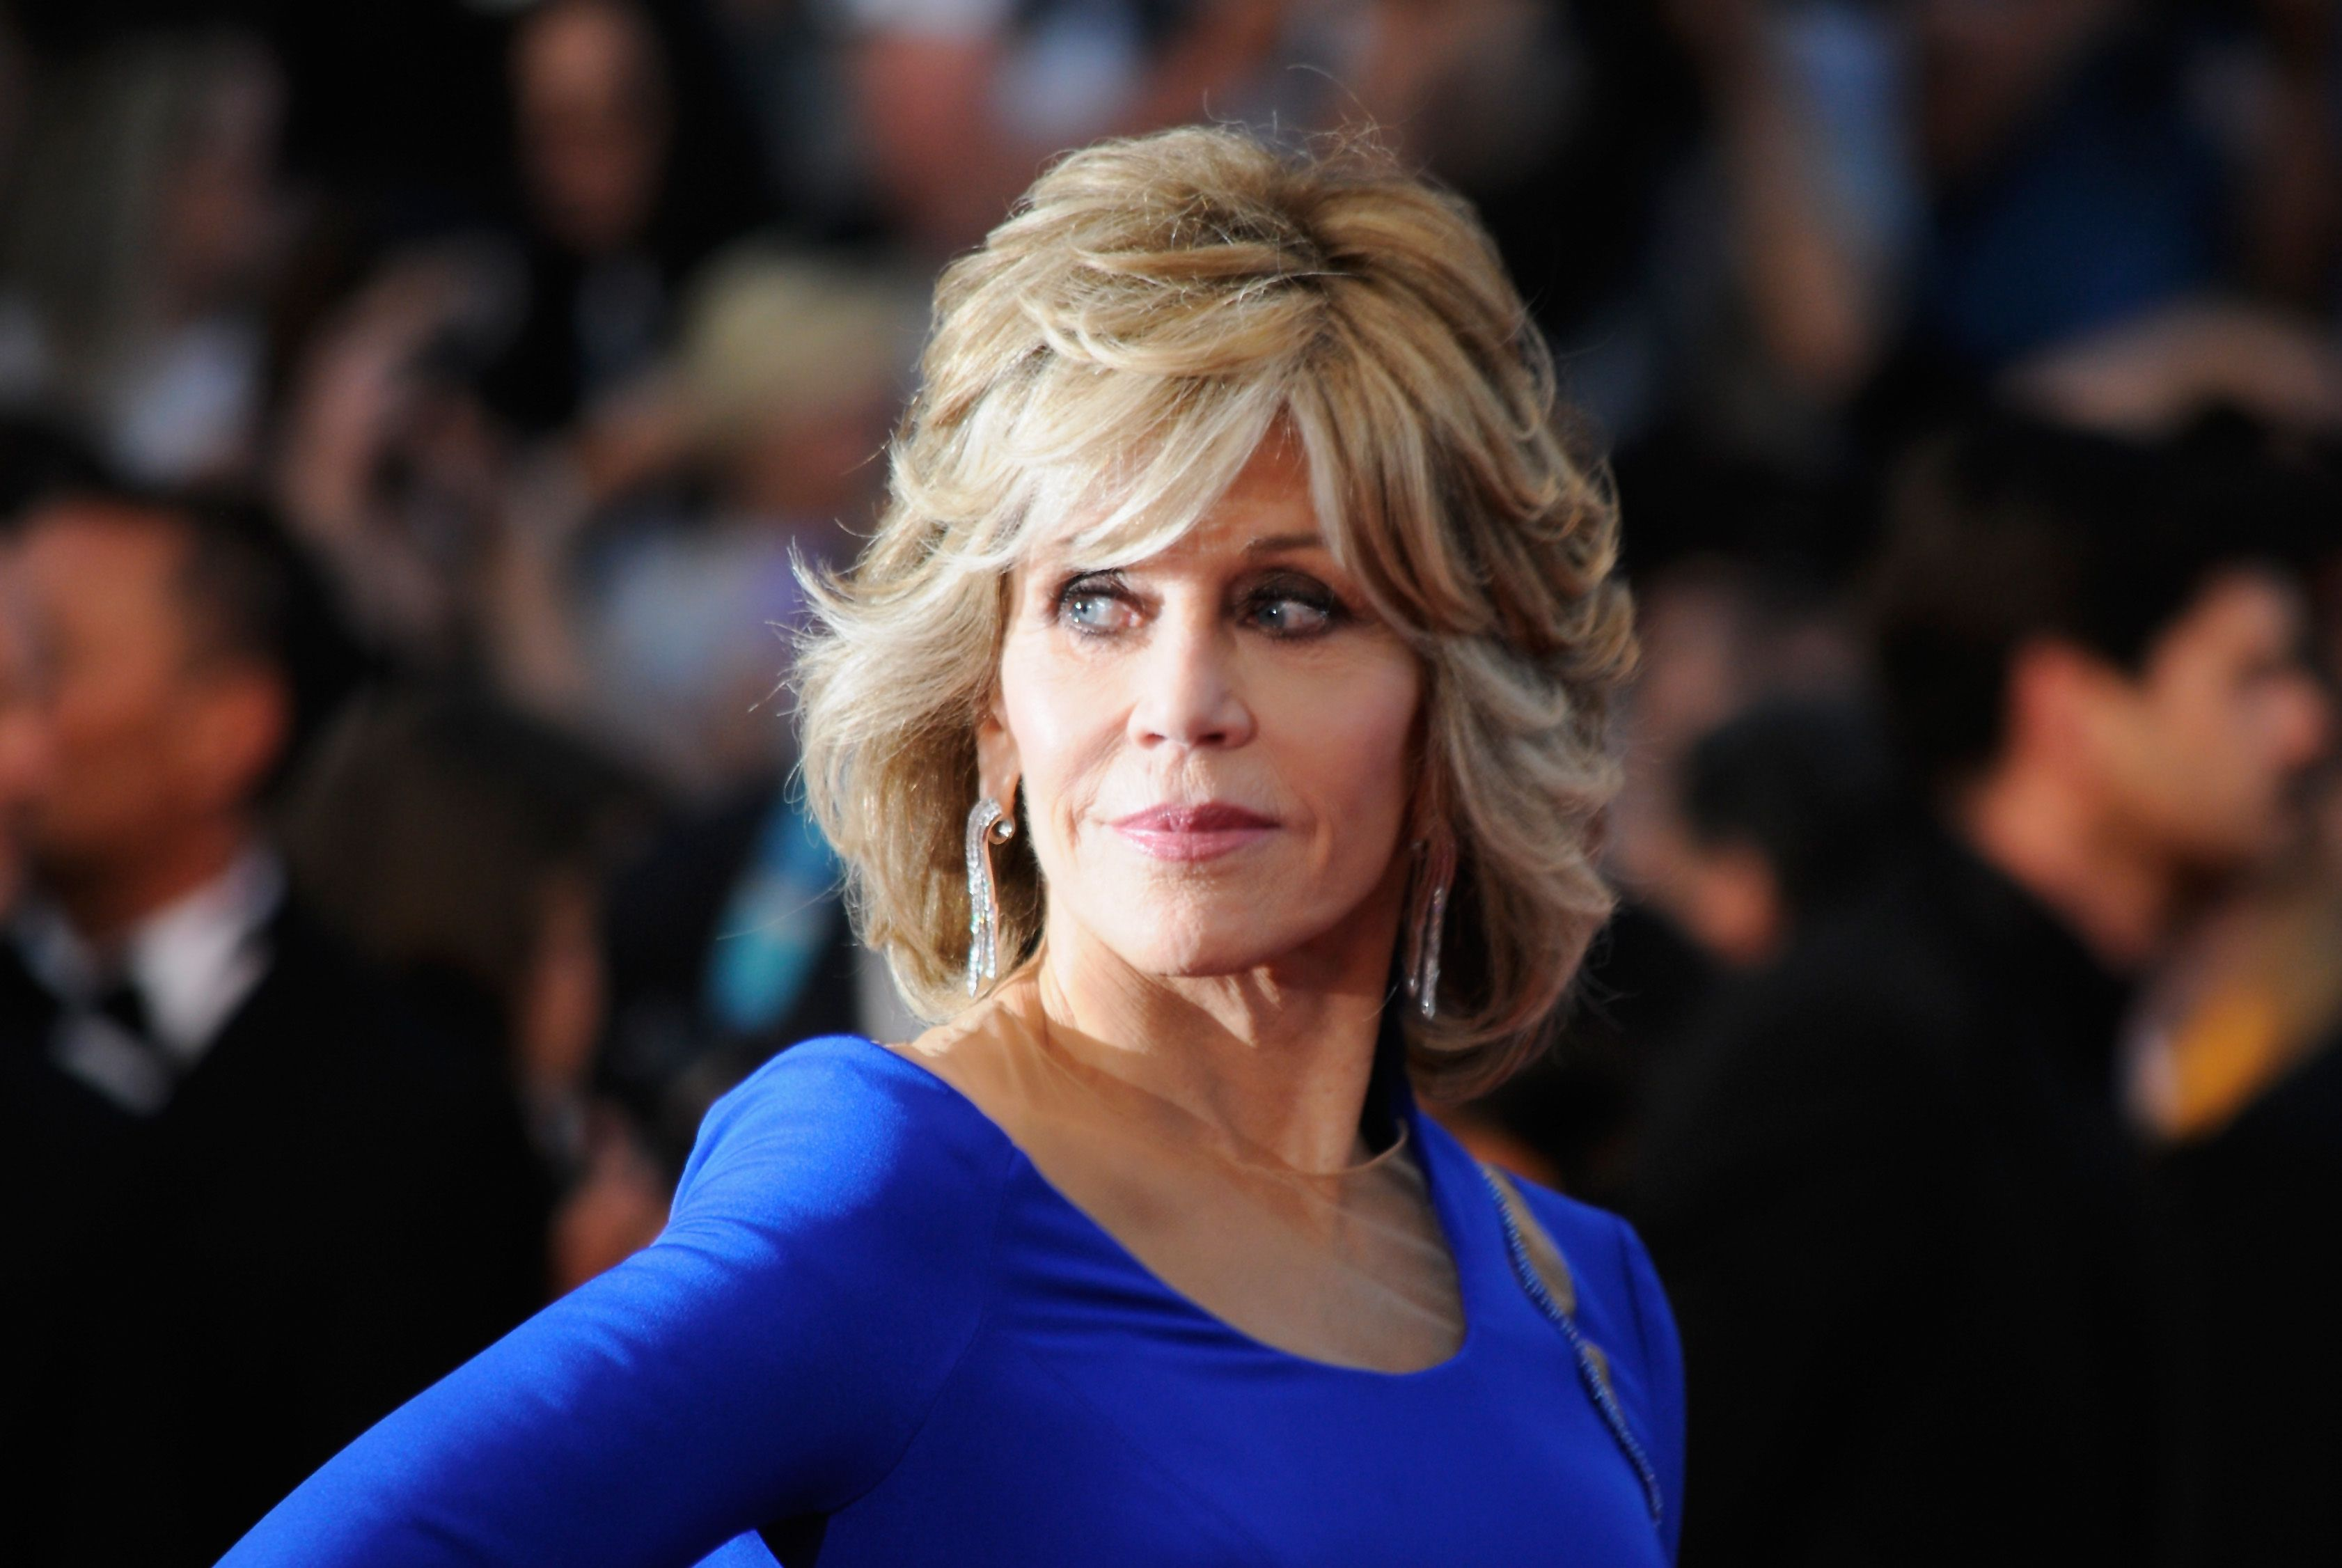 Jane Fonda Was Arrested While Protesting Climate Change in D.C.